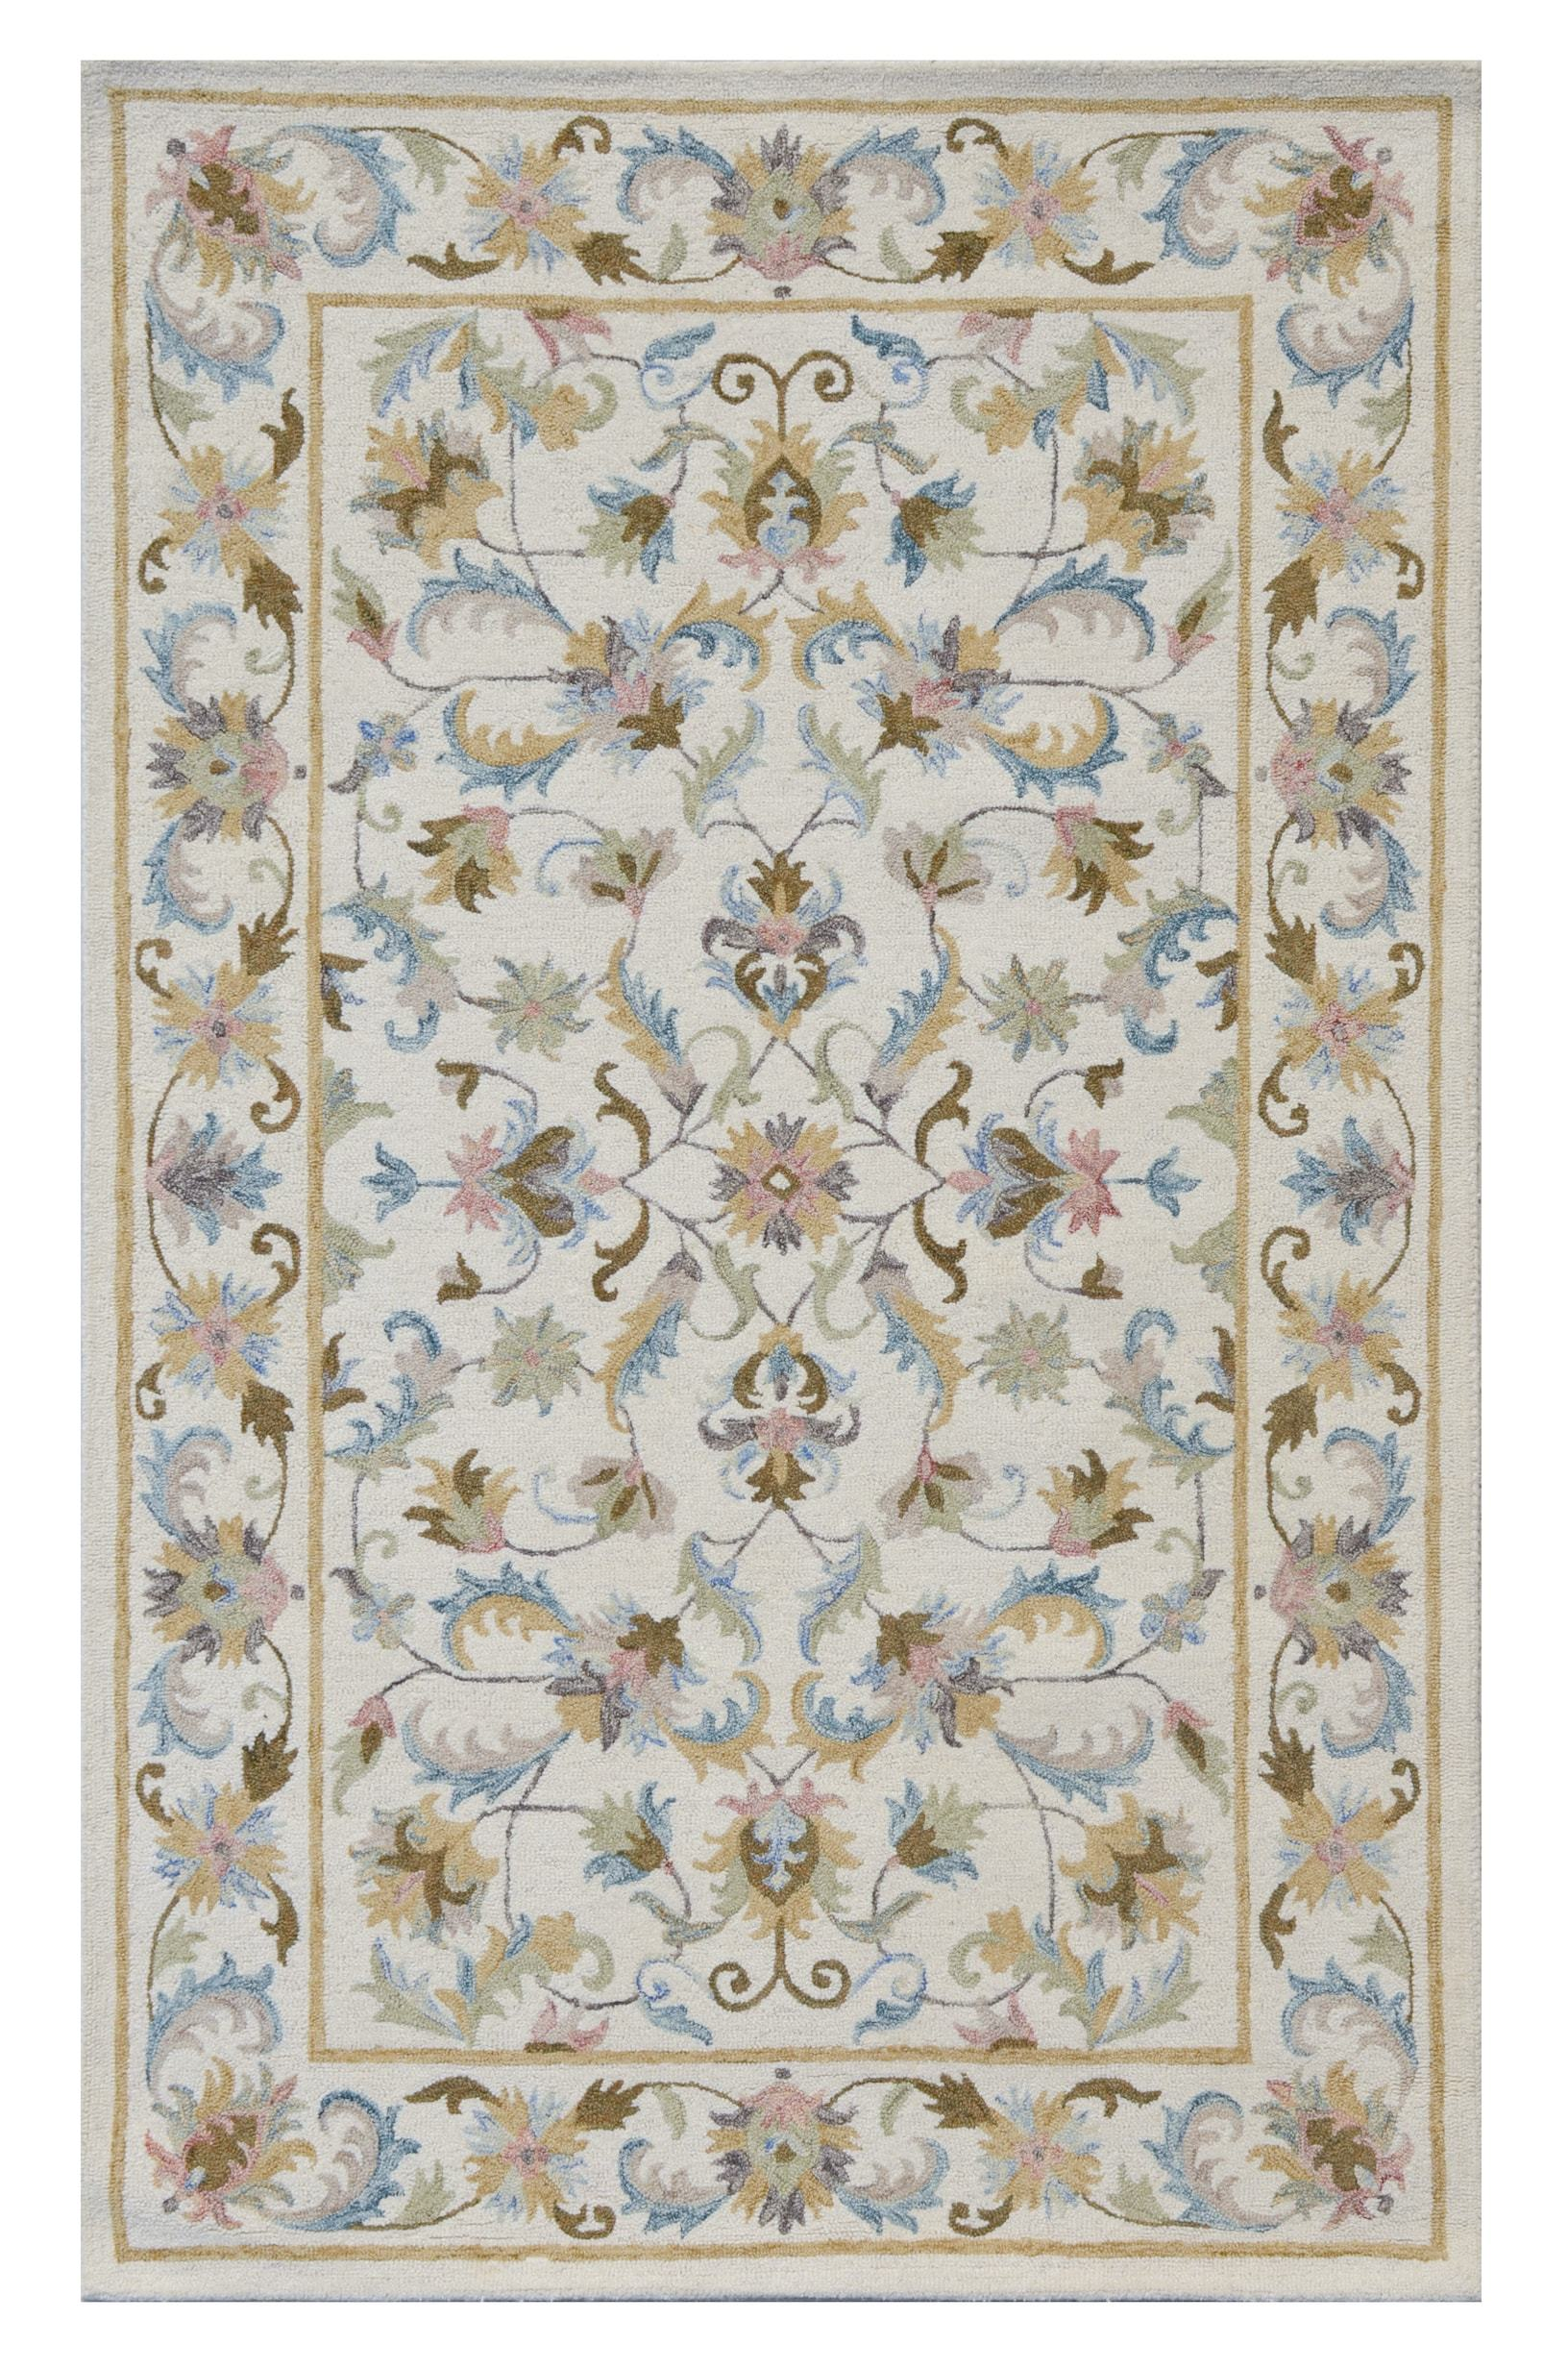 Ayaka Hand Tufted Rug by House of Rugs - Home Artisan